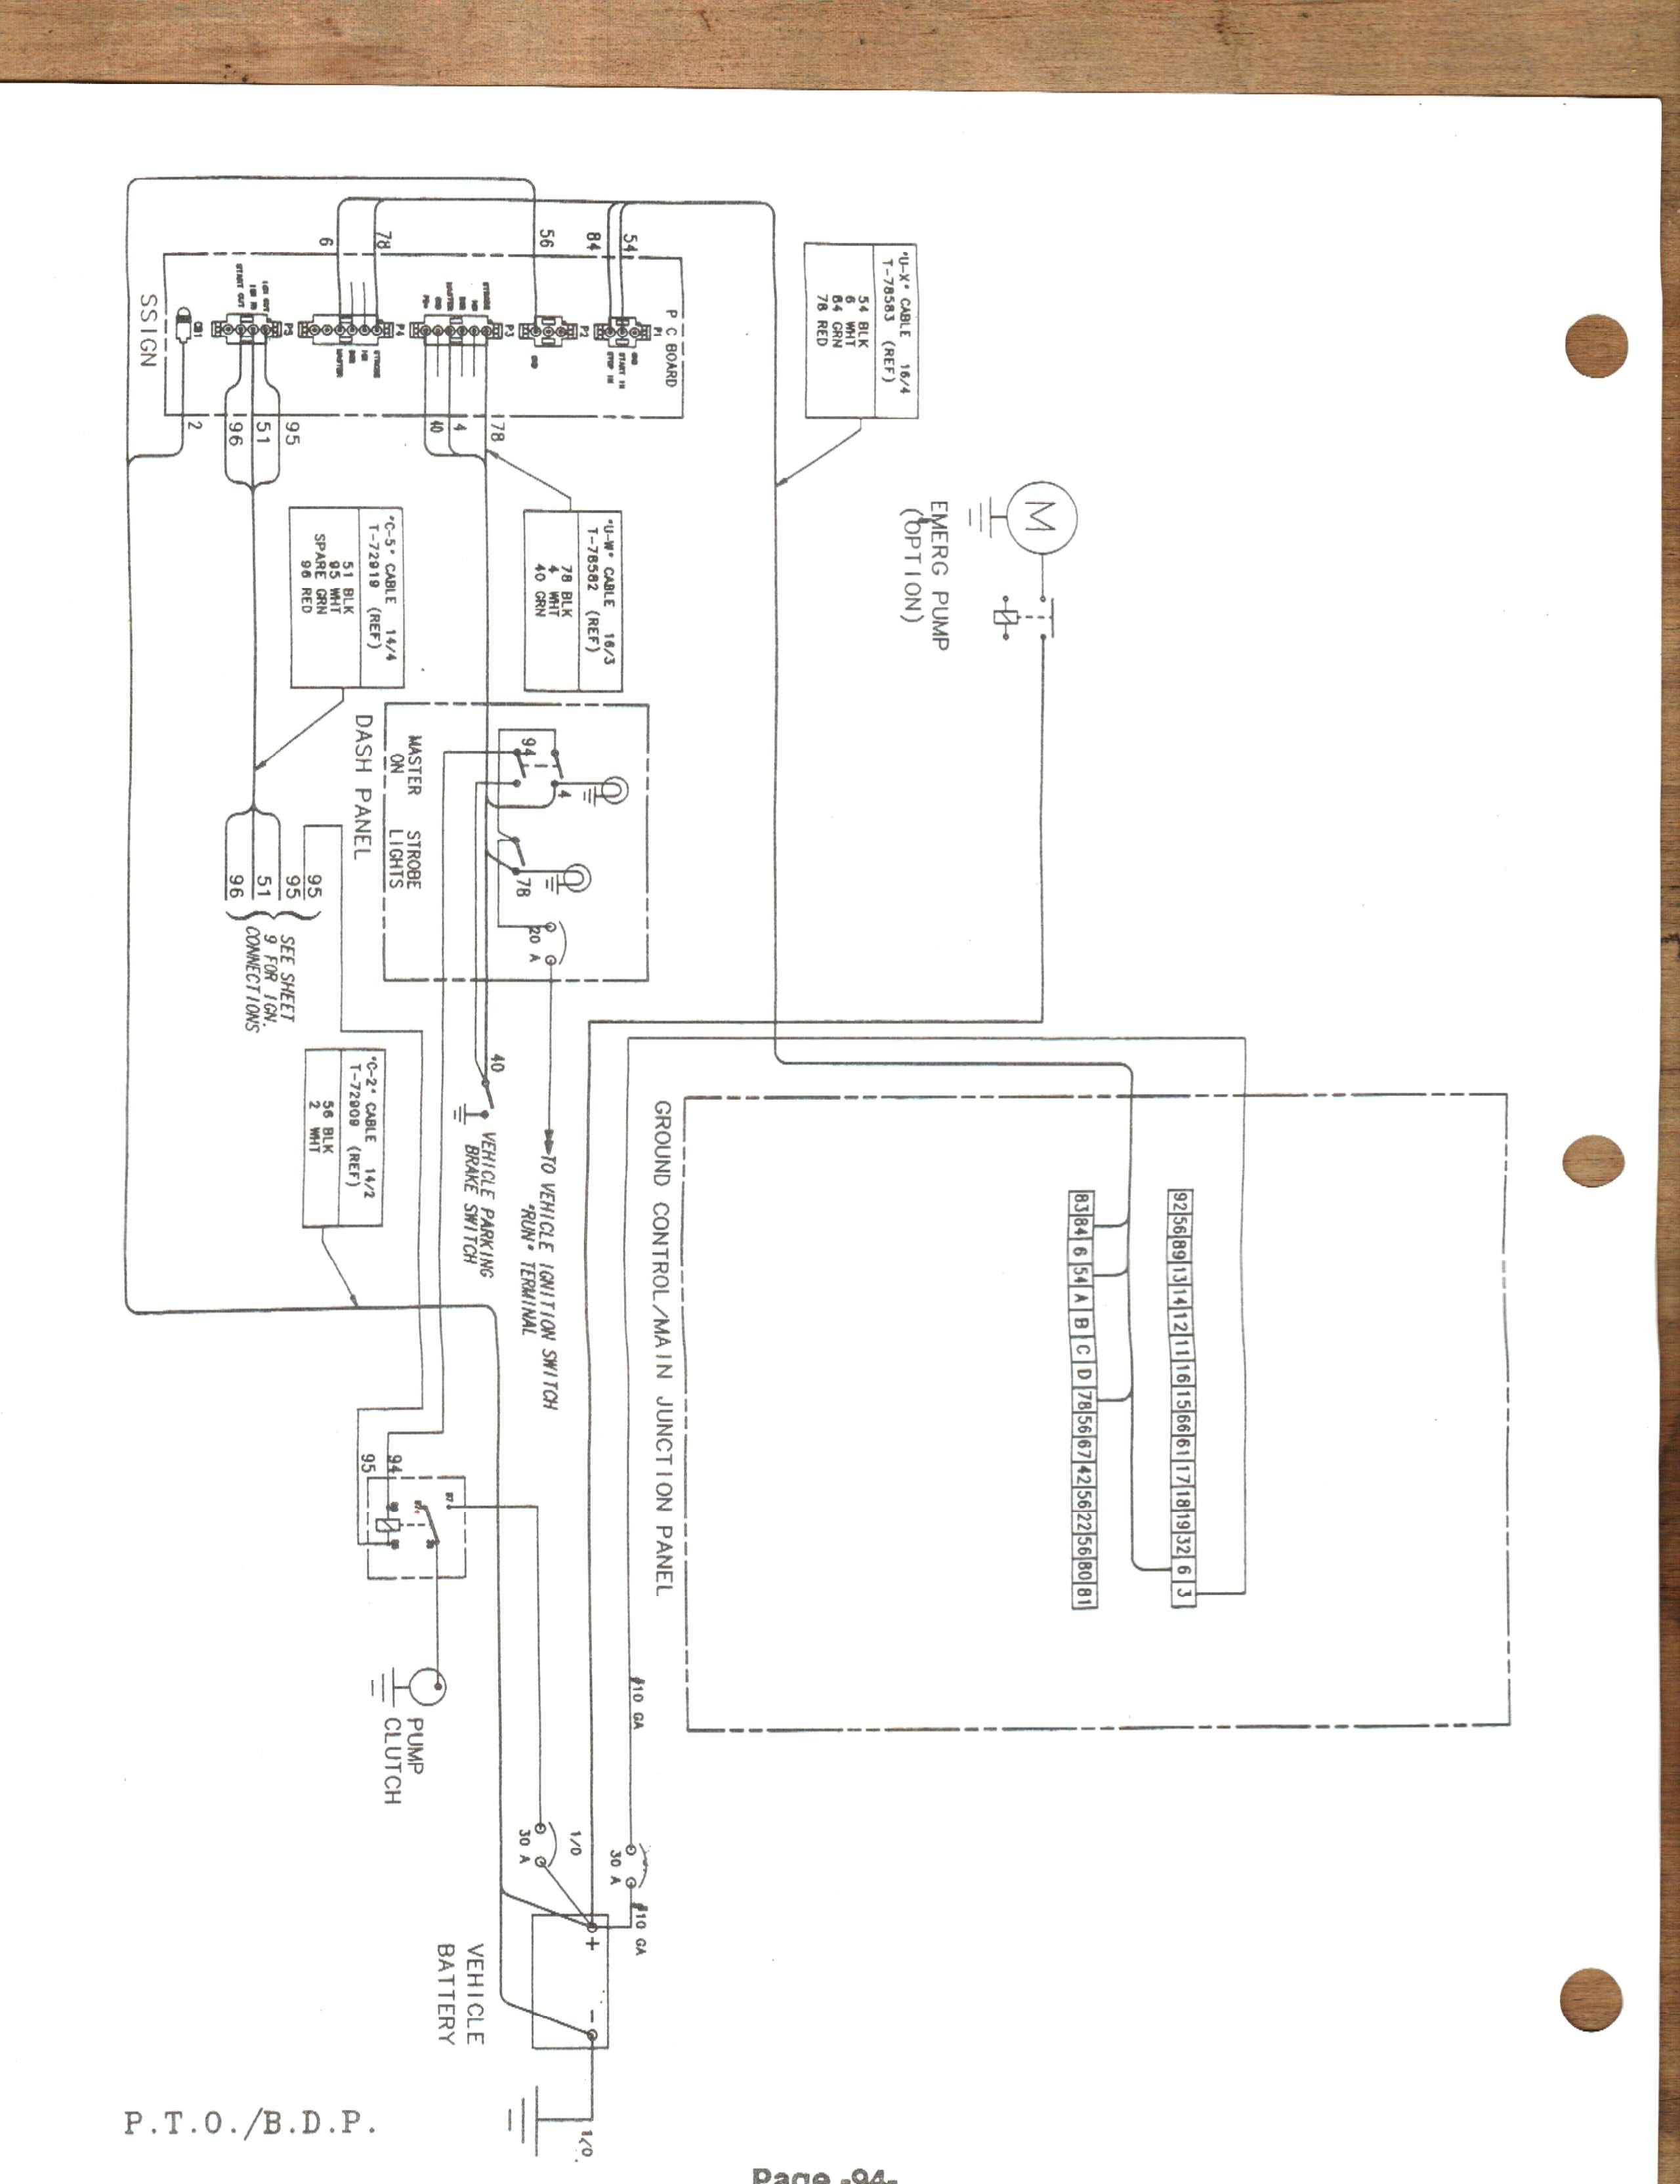 telsta bucket truck wiring diagram example electrical wiring diagram u2022 rh cranejapan co Altec Boom Hydraulic Diagram Telsta Bucket Truck Schematic